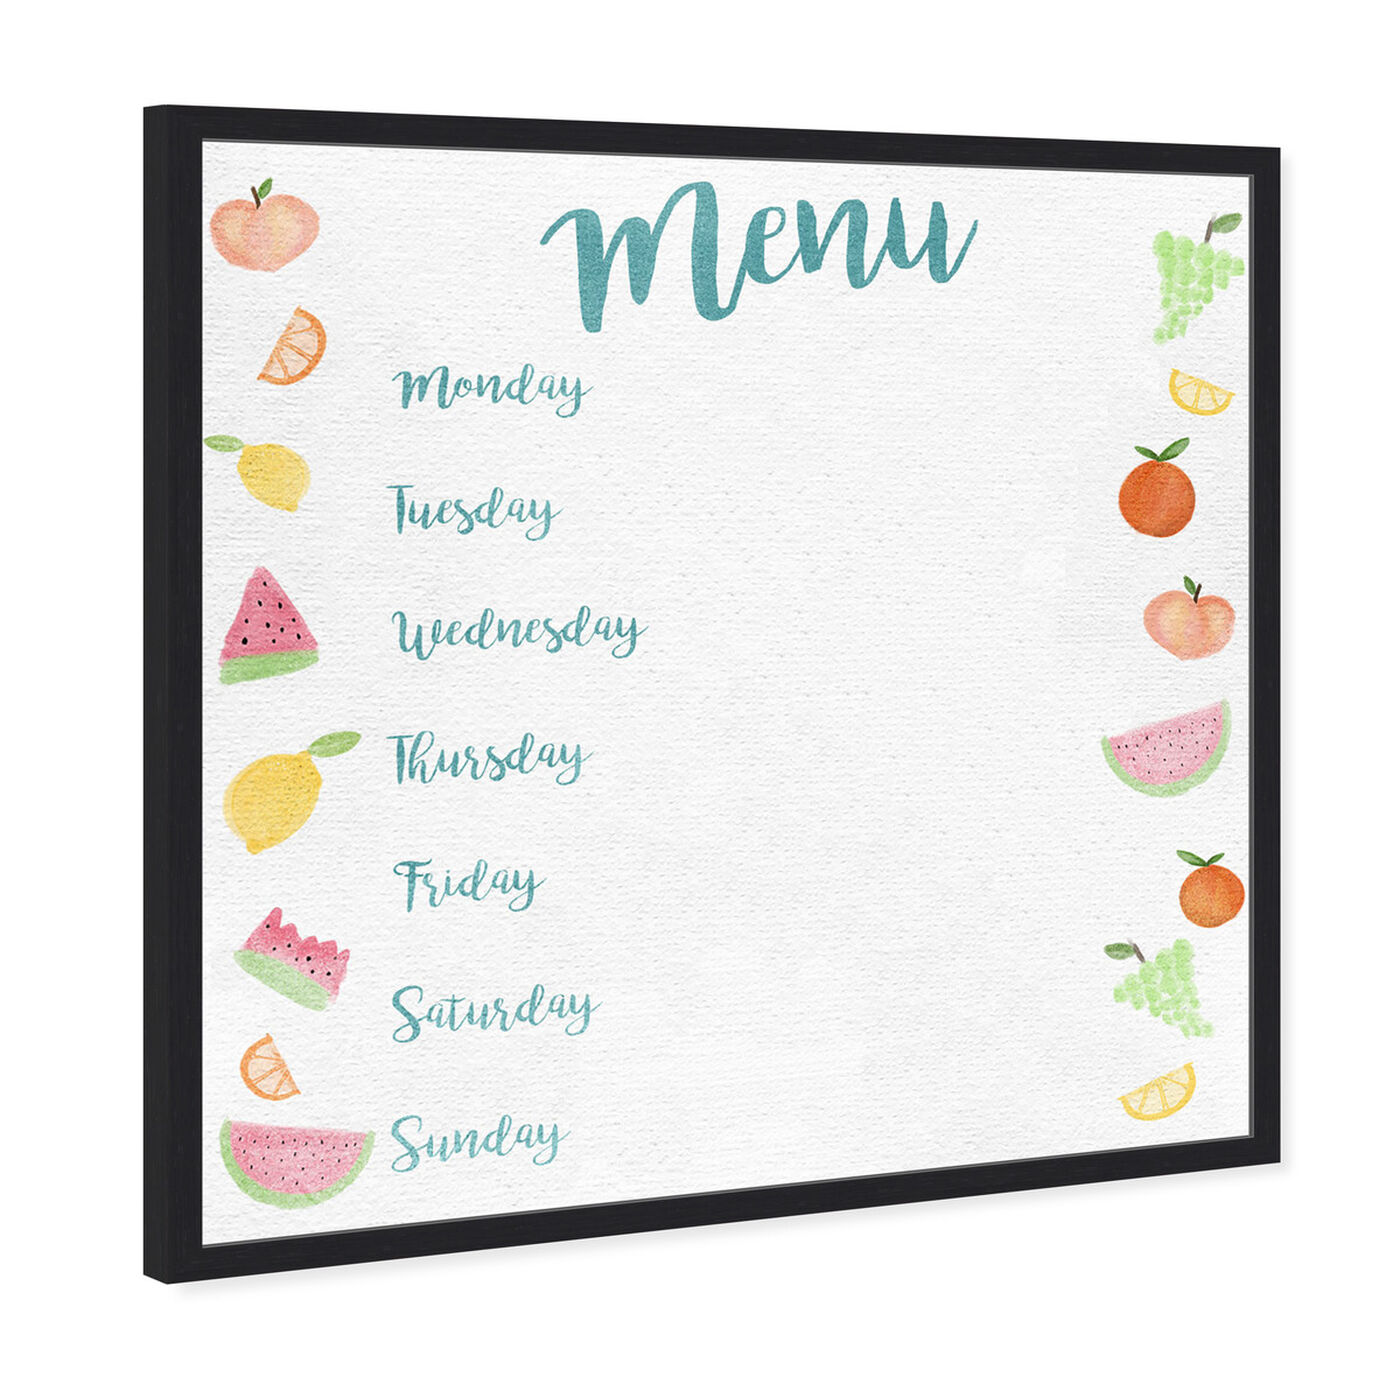 Angled view of Menu Fruits featuring education and office and whiteboards art.